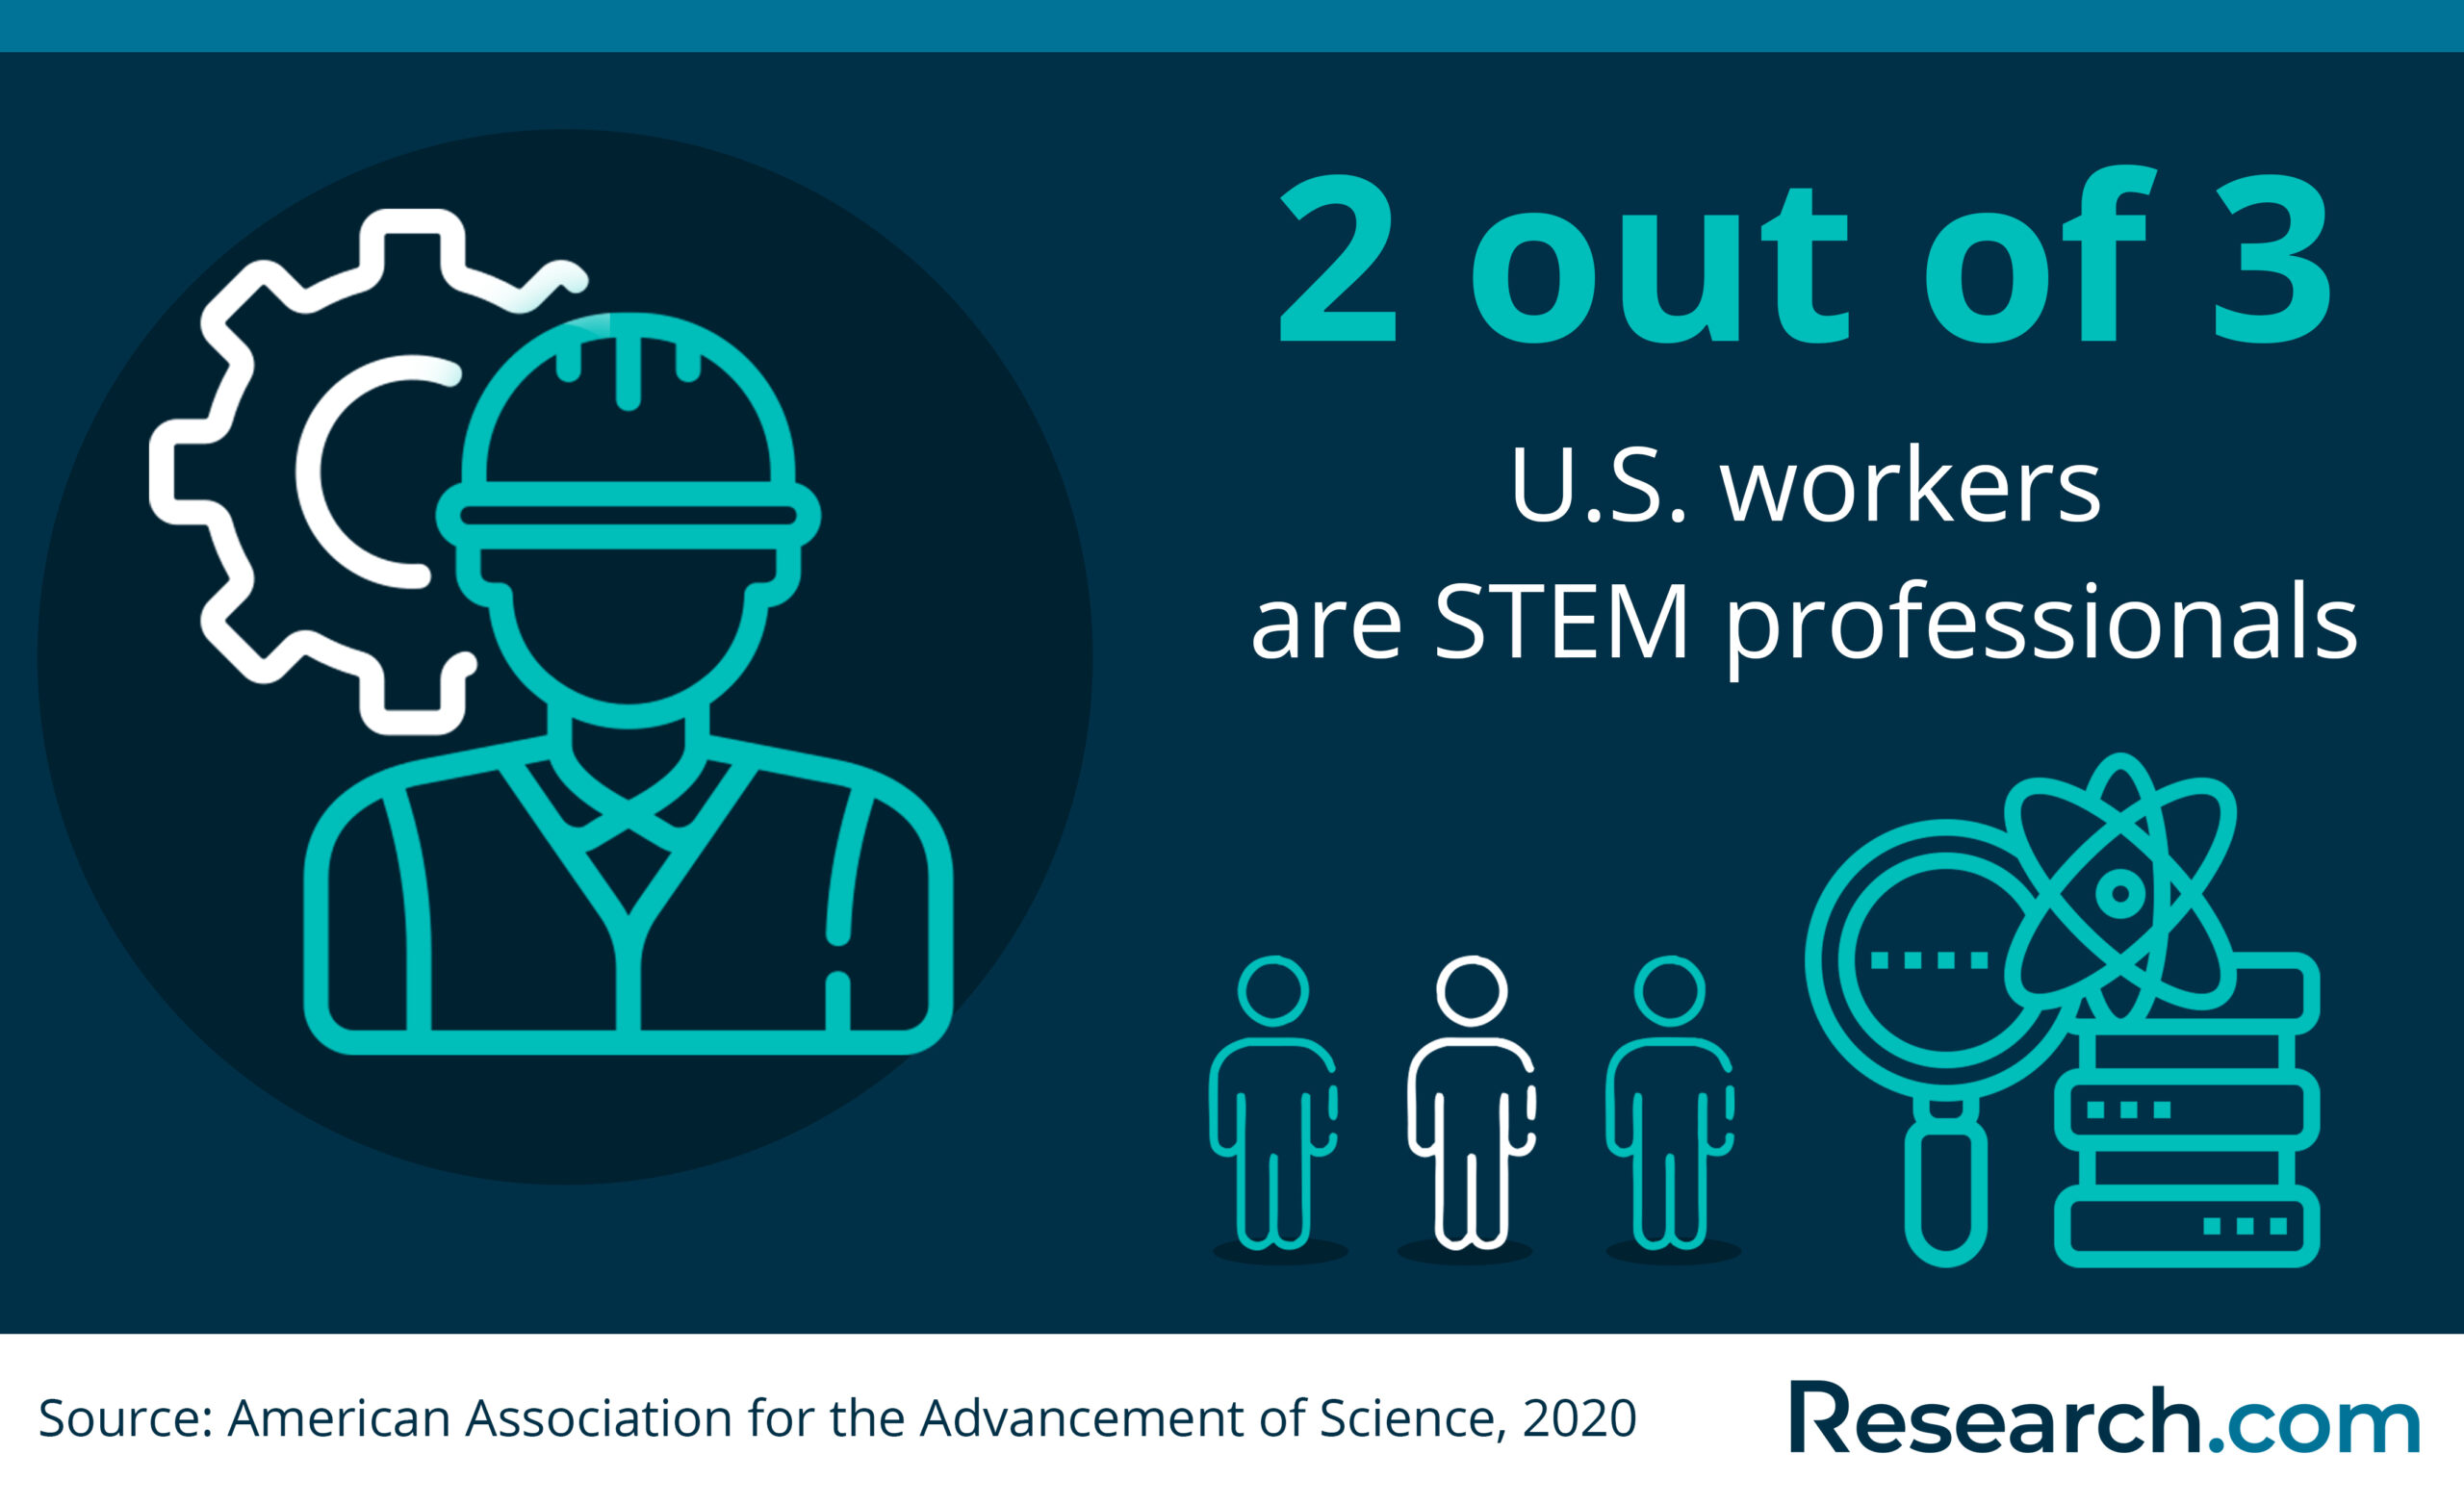 share of STEM professionals in the U.S.